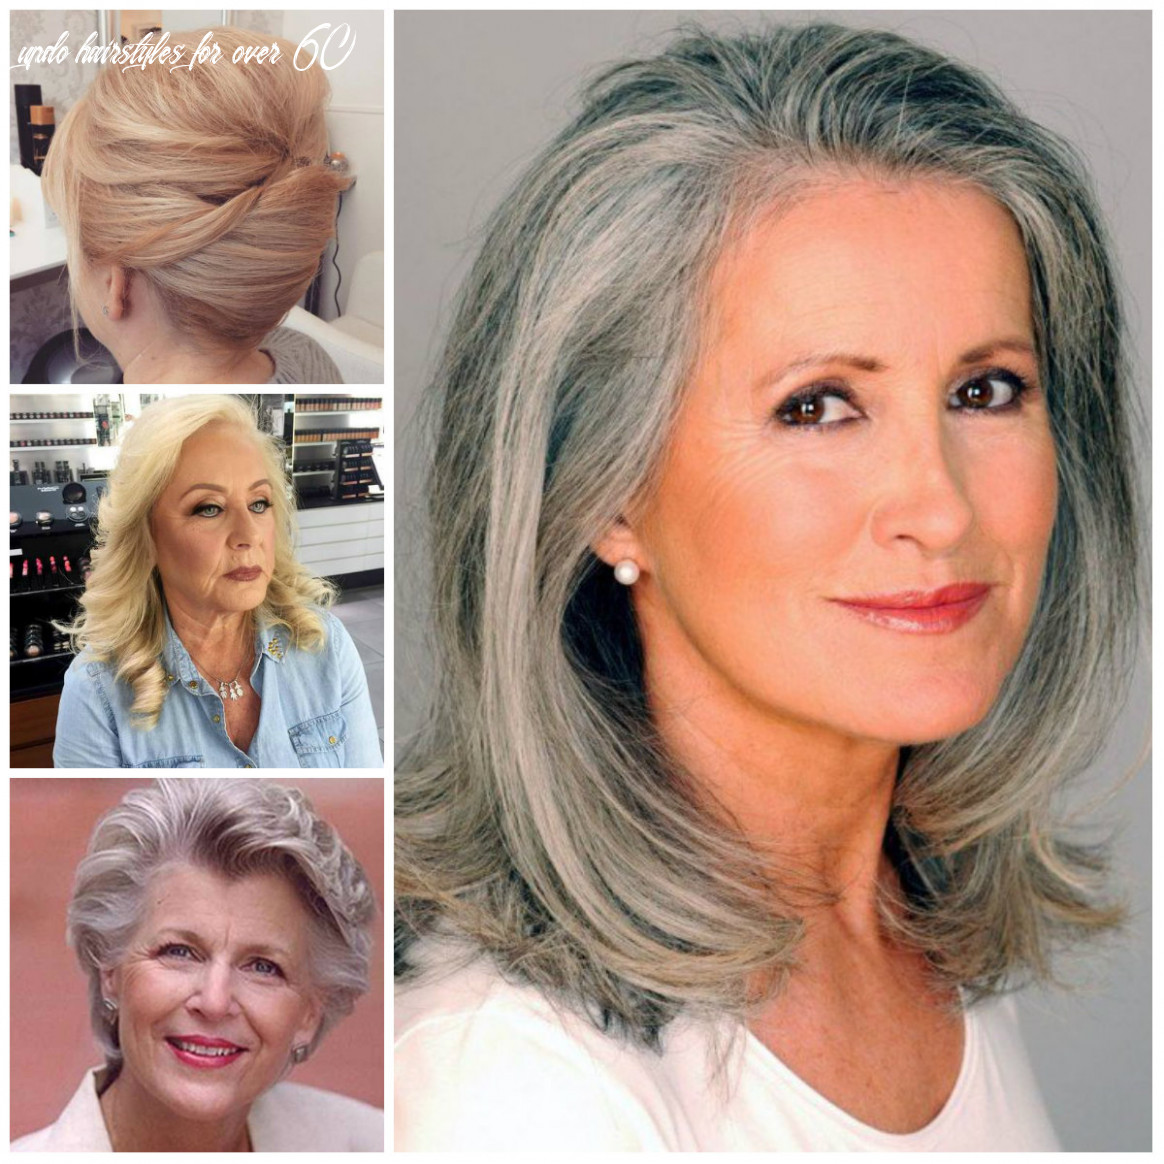 Updo hairstyles | 10 haircuts, hairstyles and hair colors updo hairstyles for over 60